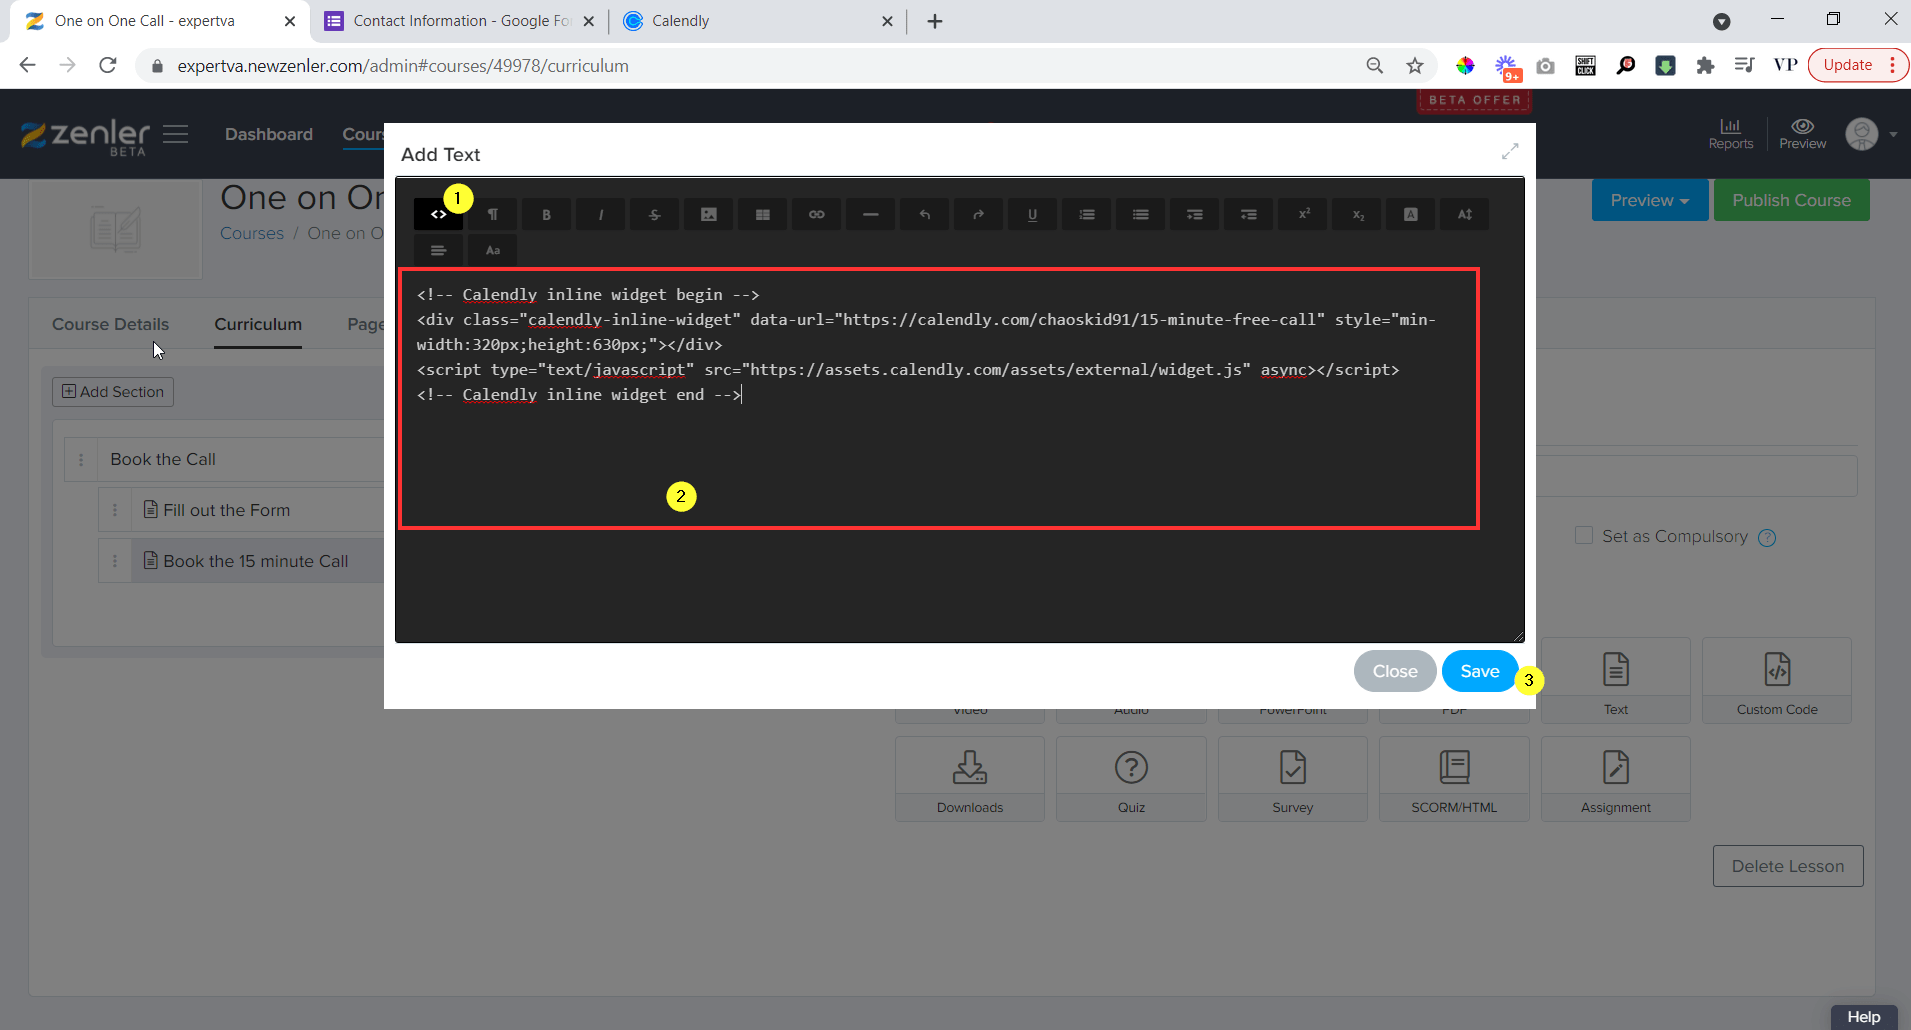 open code editor and paste the code and click on save